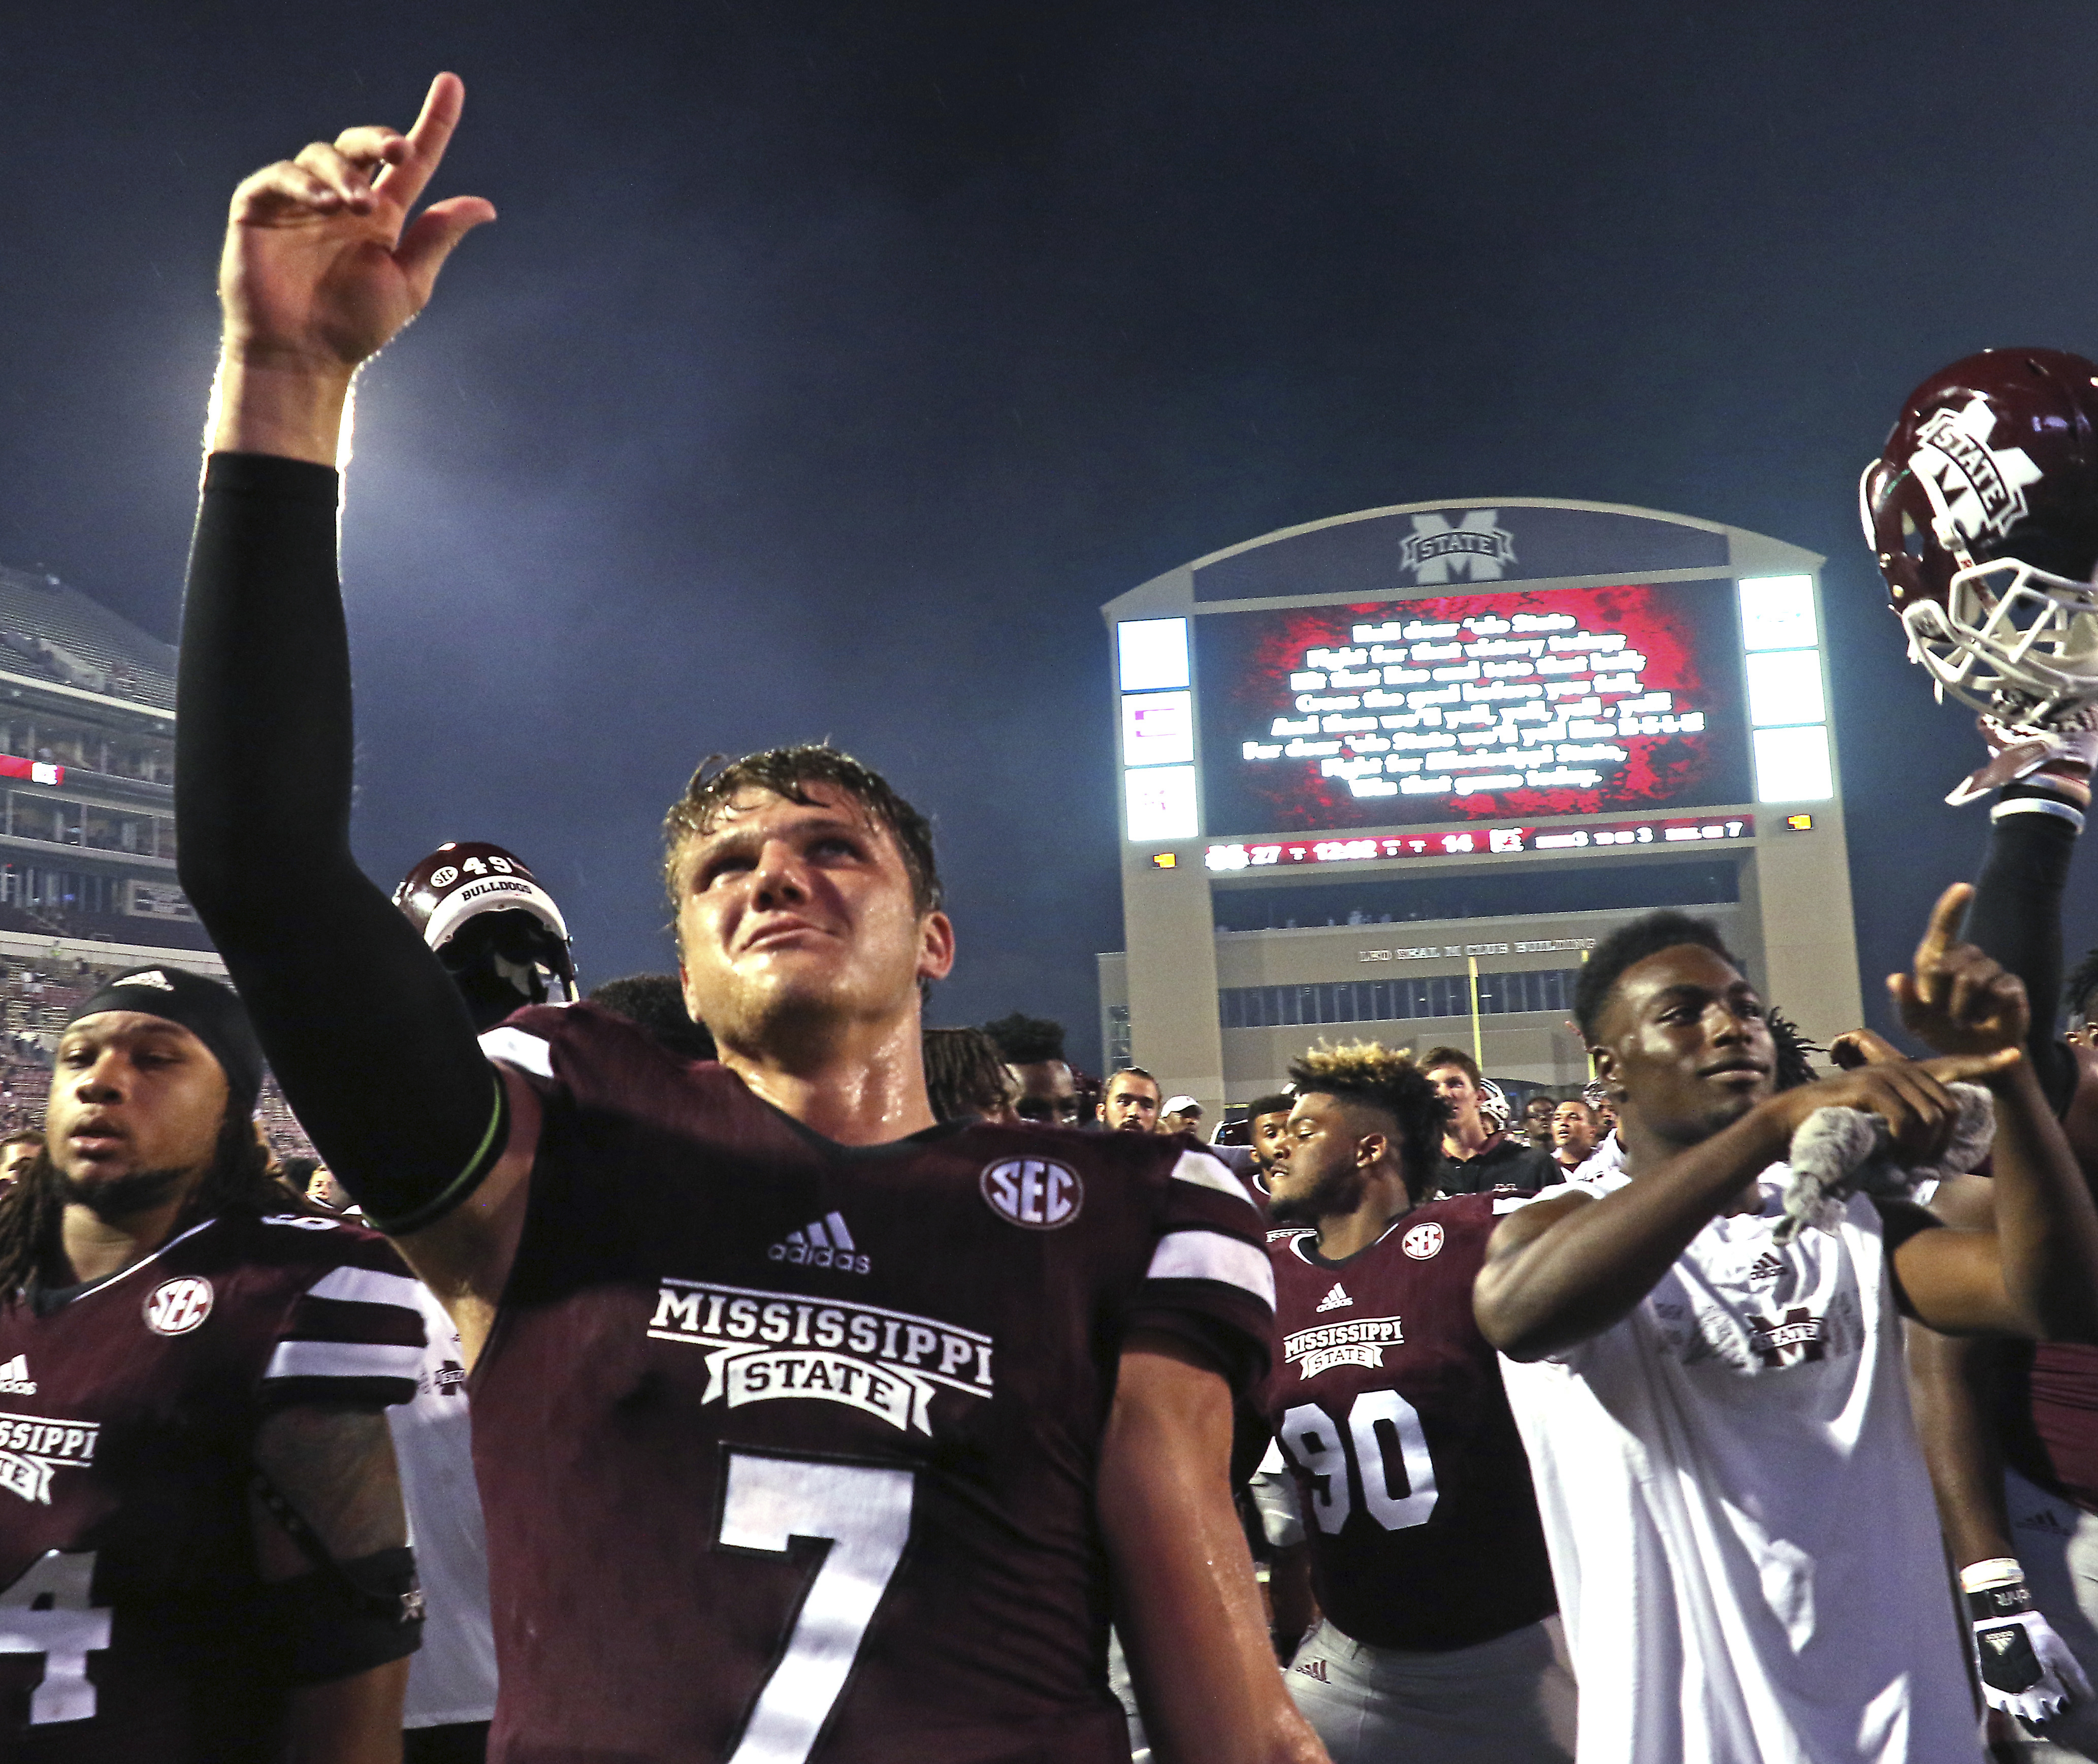 Mississippi State quarterback Nick Fitzgerald (7) celebrate his team's 27-14 win over South Carolina in an NCAA college football game in Starkville, Miss., Saturday, Sept. 10, 2016. (AP Photo/Jim Lytle)